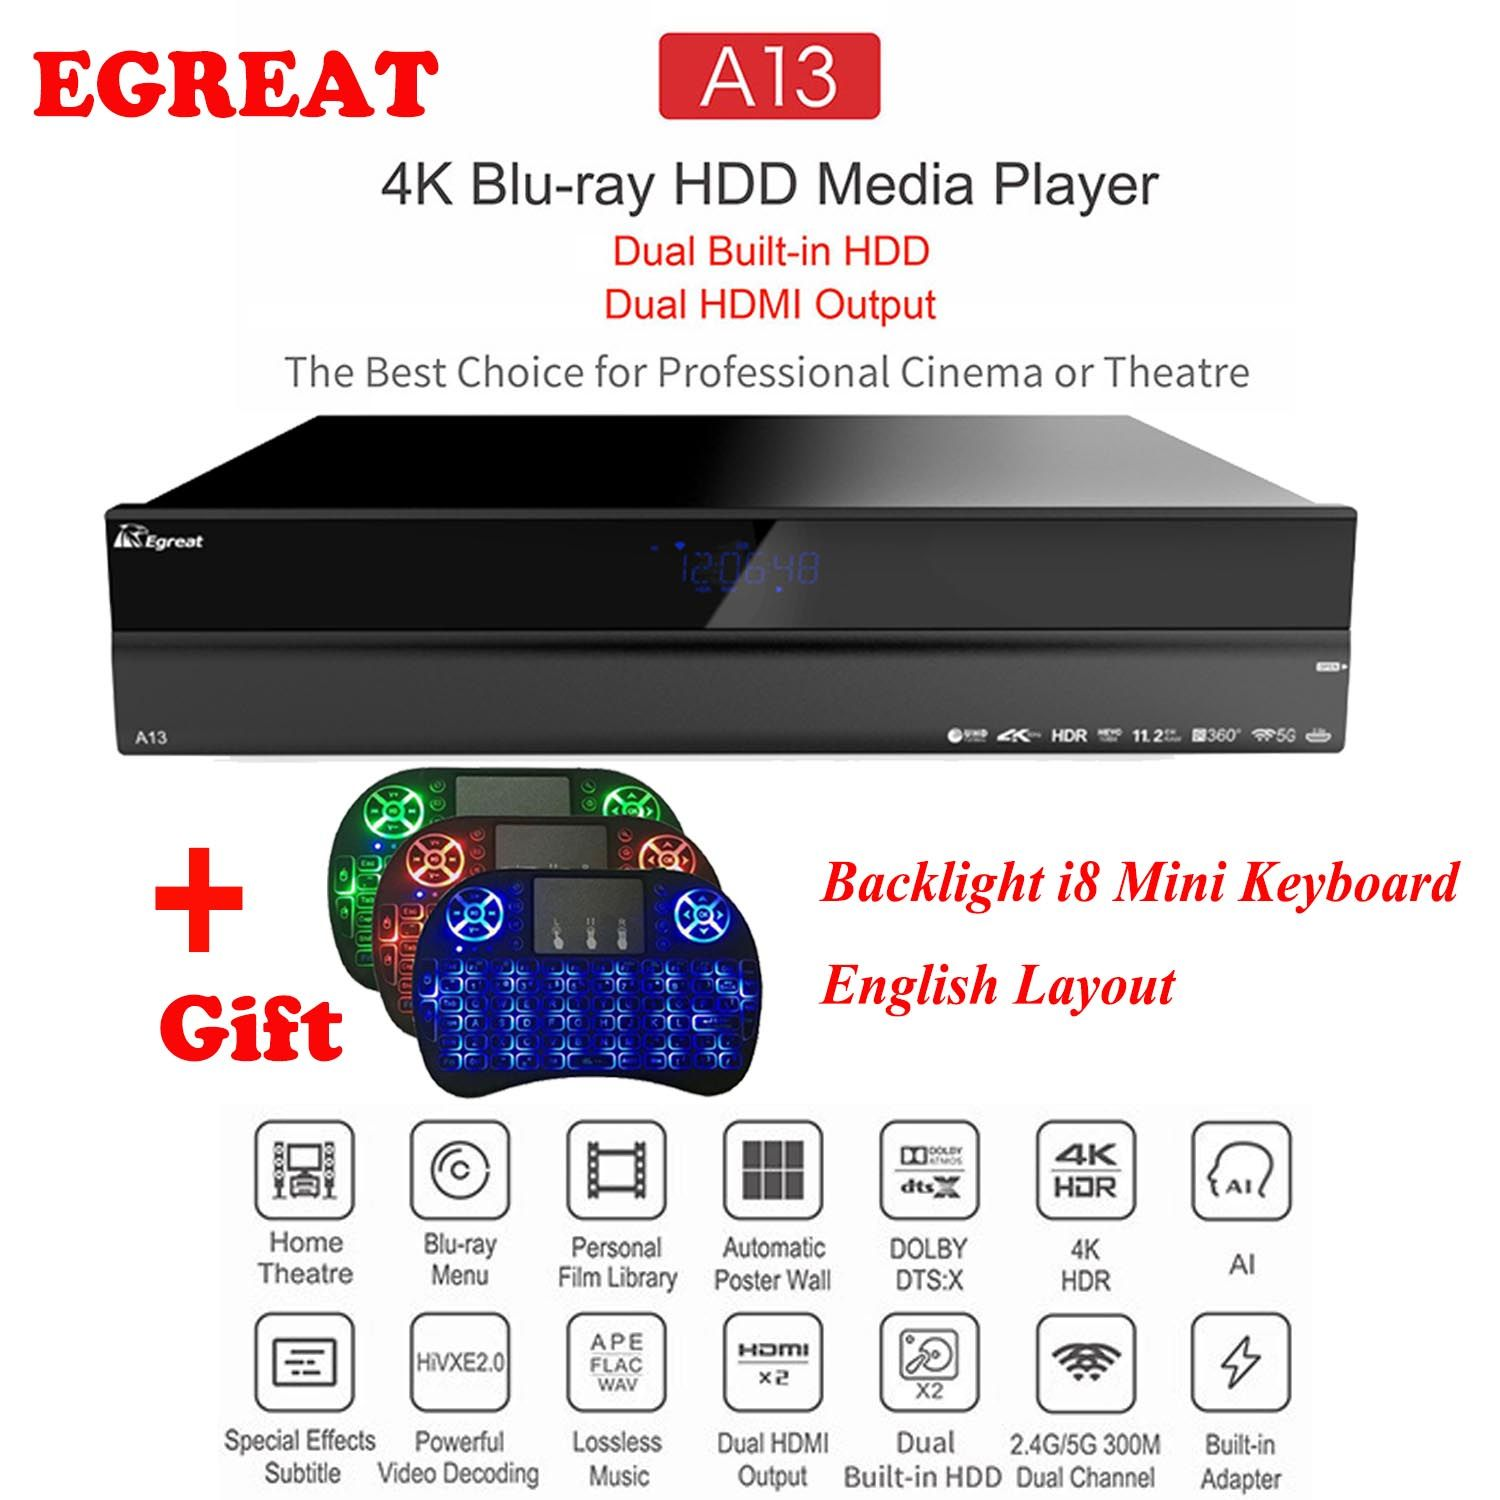 2019 High-end Home Theatre System Egreat A13 4 K UHD Blu-ray HDD Media Player, dual Eingebaute HDD, Dual HDMI Ausgang Android TV Box